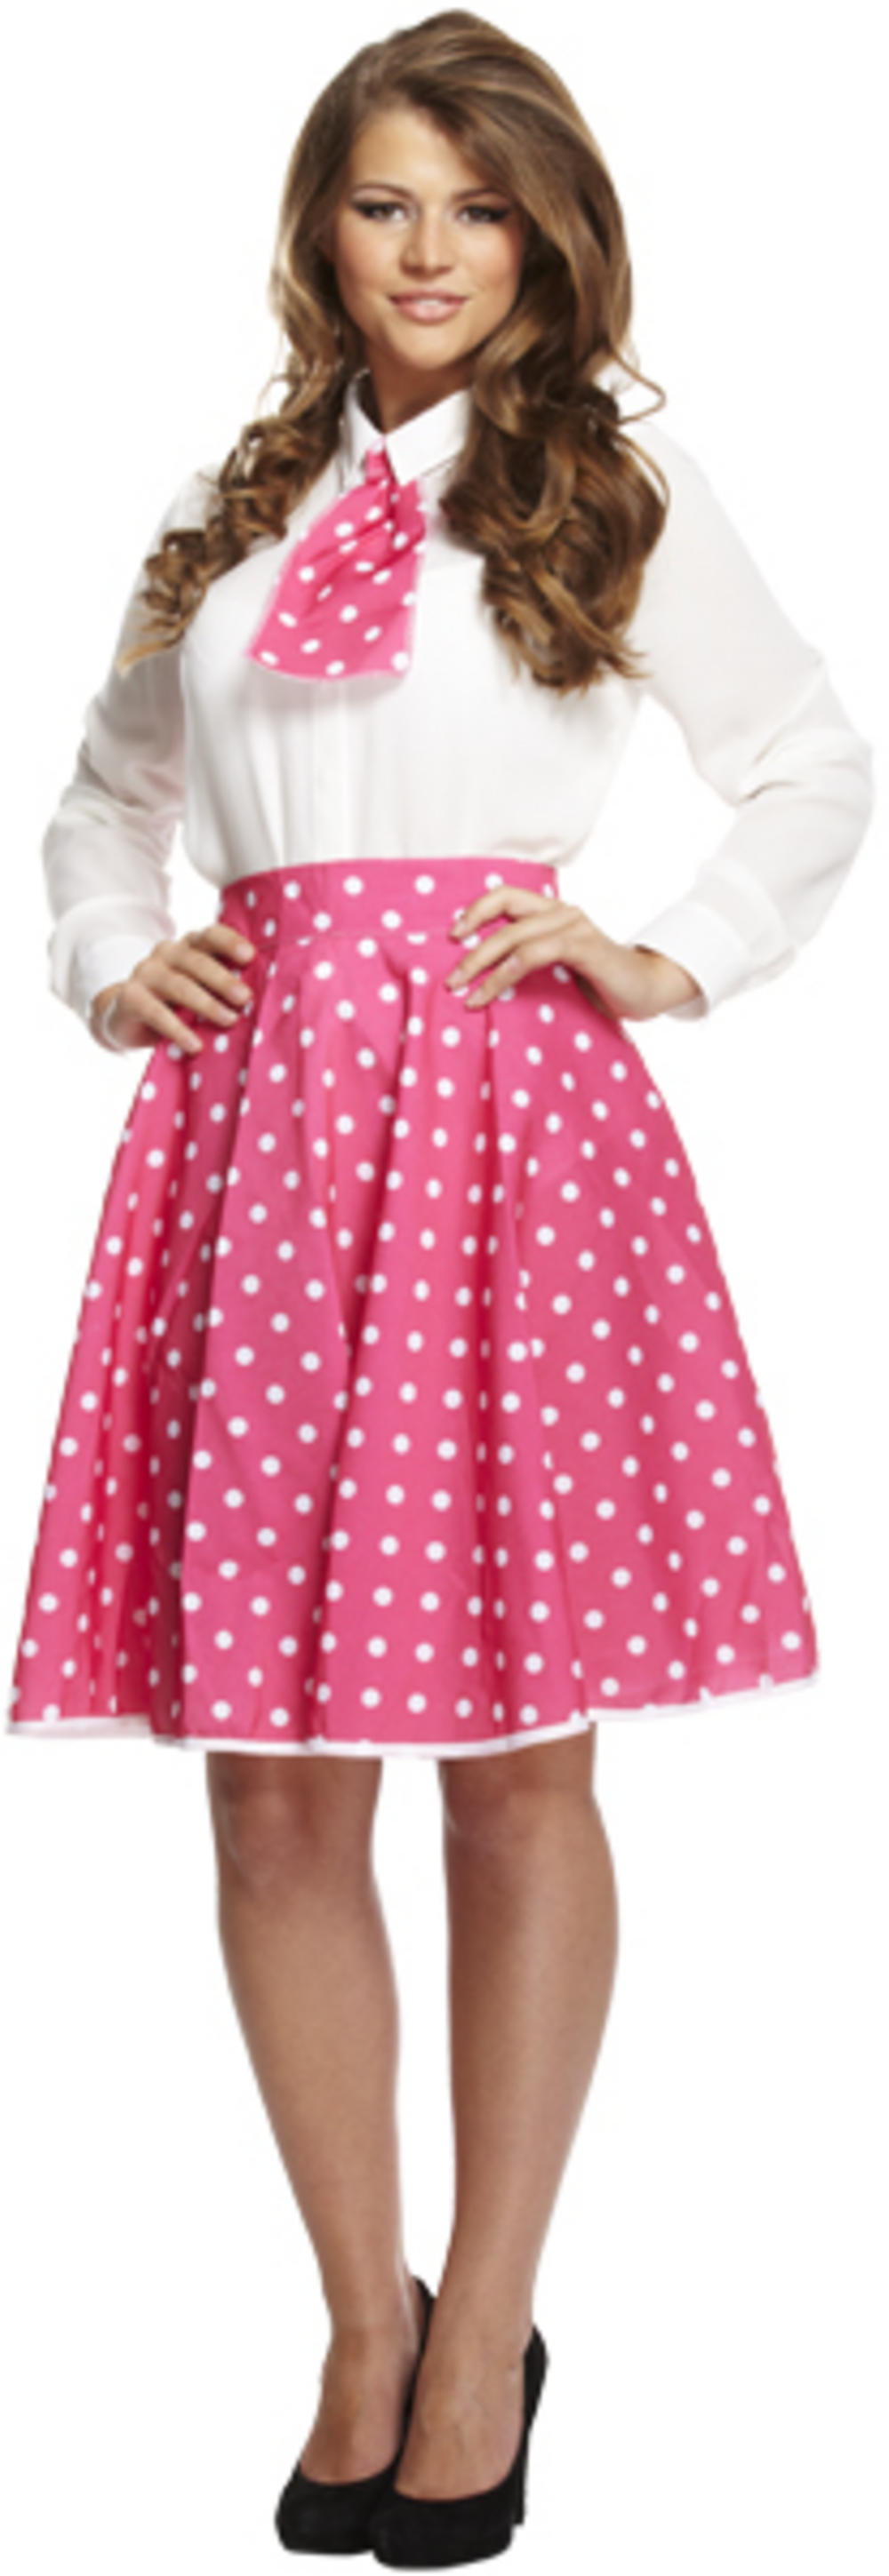 50s Polka Dot Set Costume